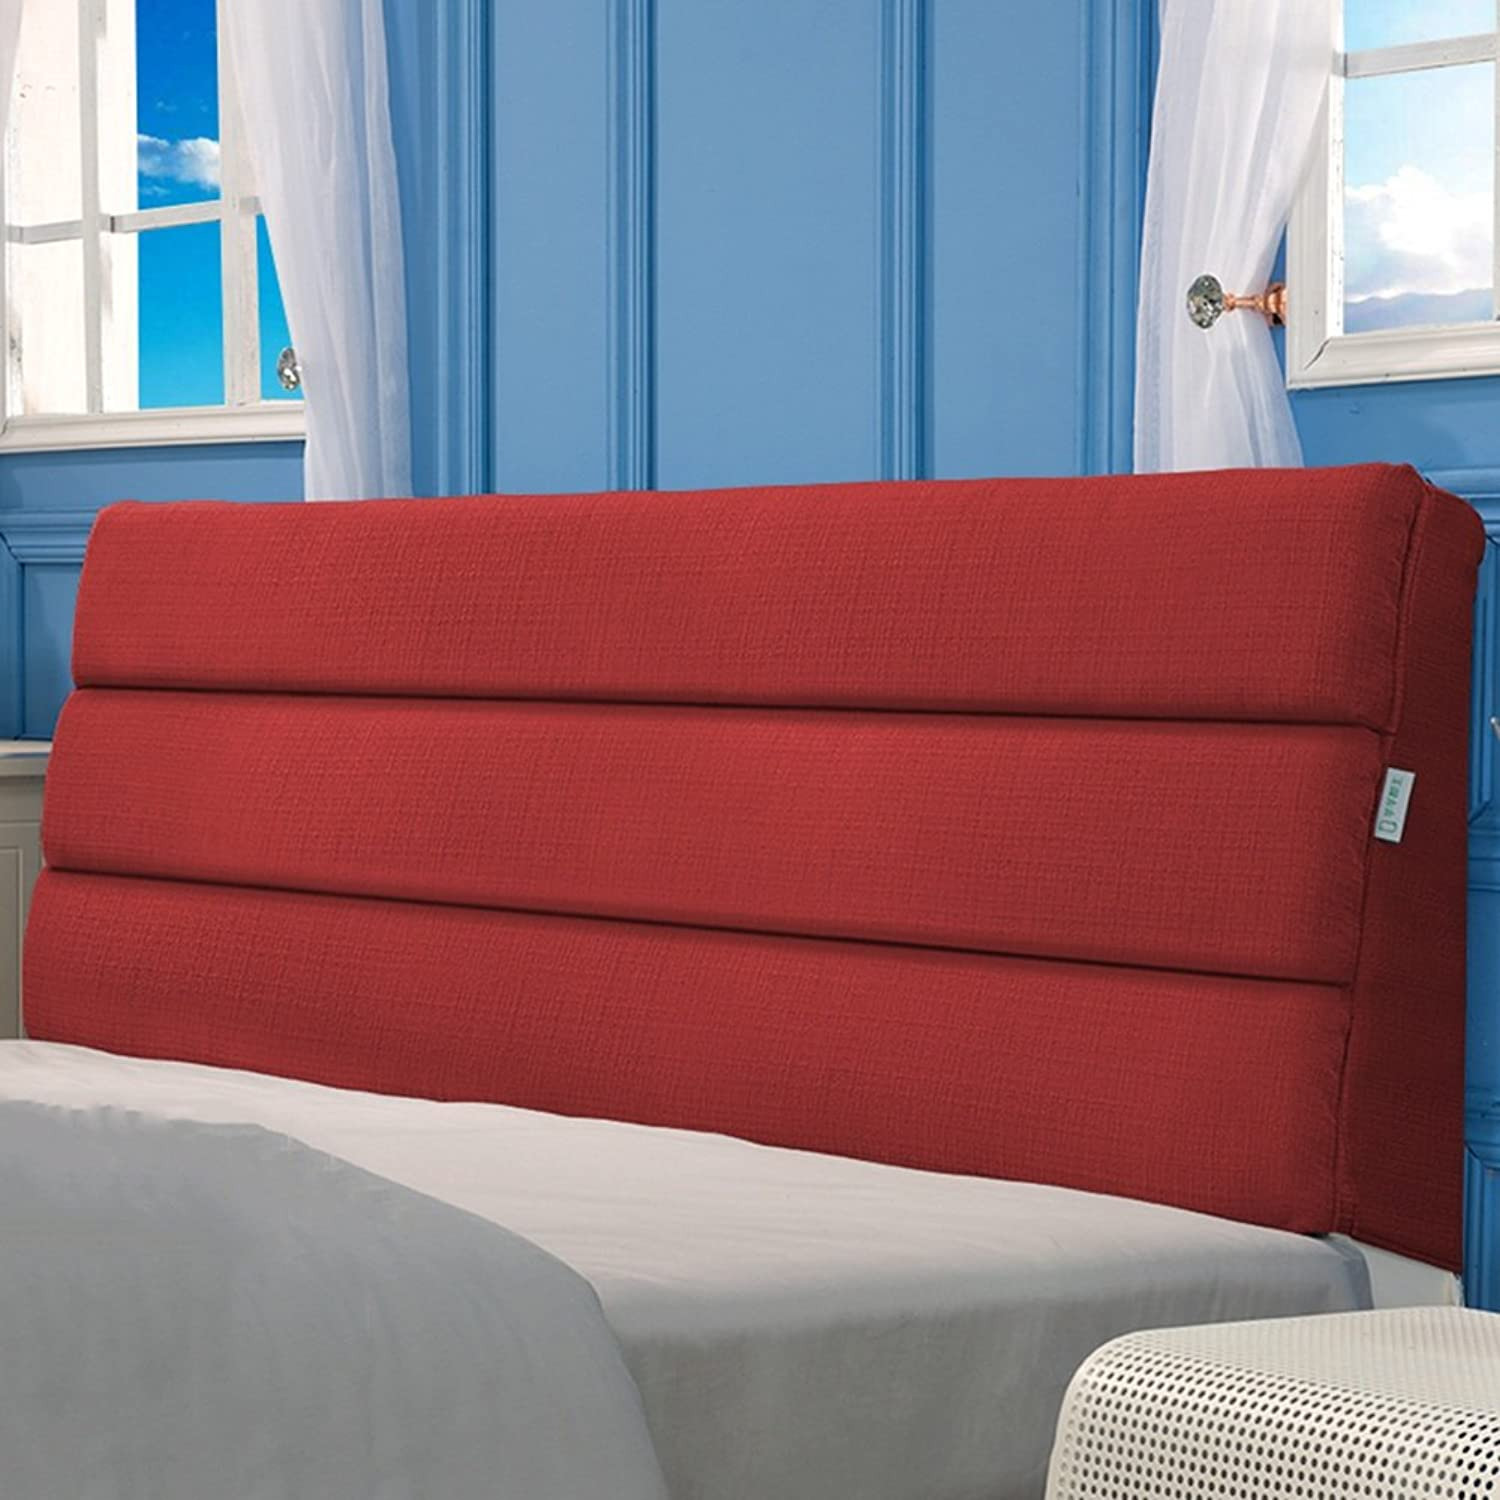 WENZHE Upholstered Fabric Headboard Bedside Cushion Pads Cover Bed Wedges Backrest Waist Pad Cloth Art Soft Case Bed Cover Home Bedroom Large Back Sofa Pillow Washable Multifunction, There Are Headboards, Not Deformed, 6 colors, 9 Sizes Optional ( color